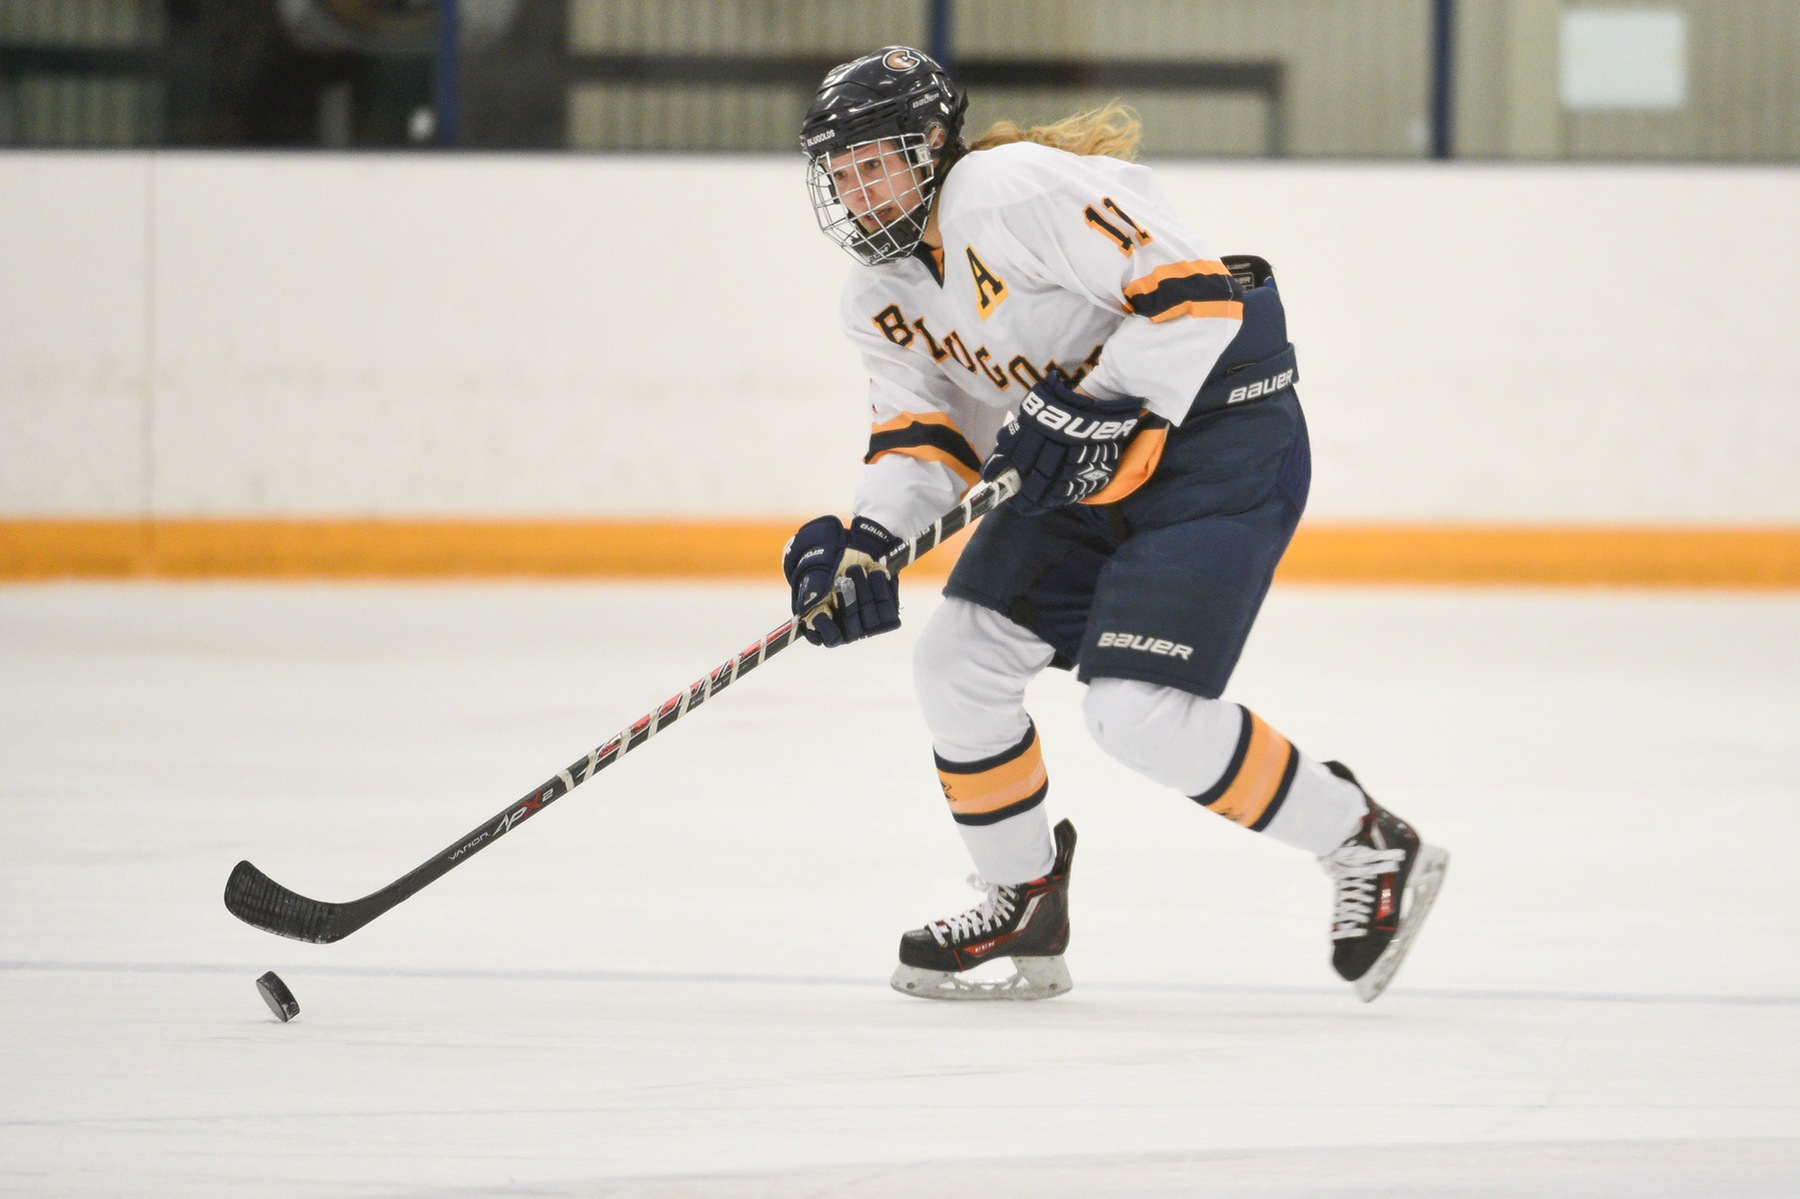 Blugolds take down Foresters in OT